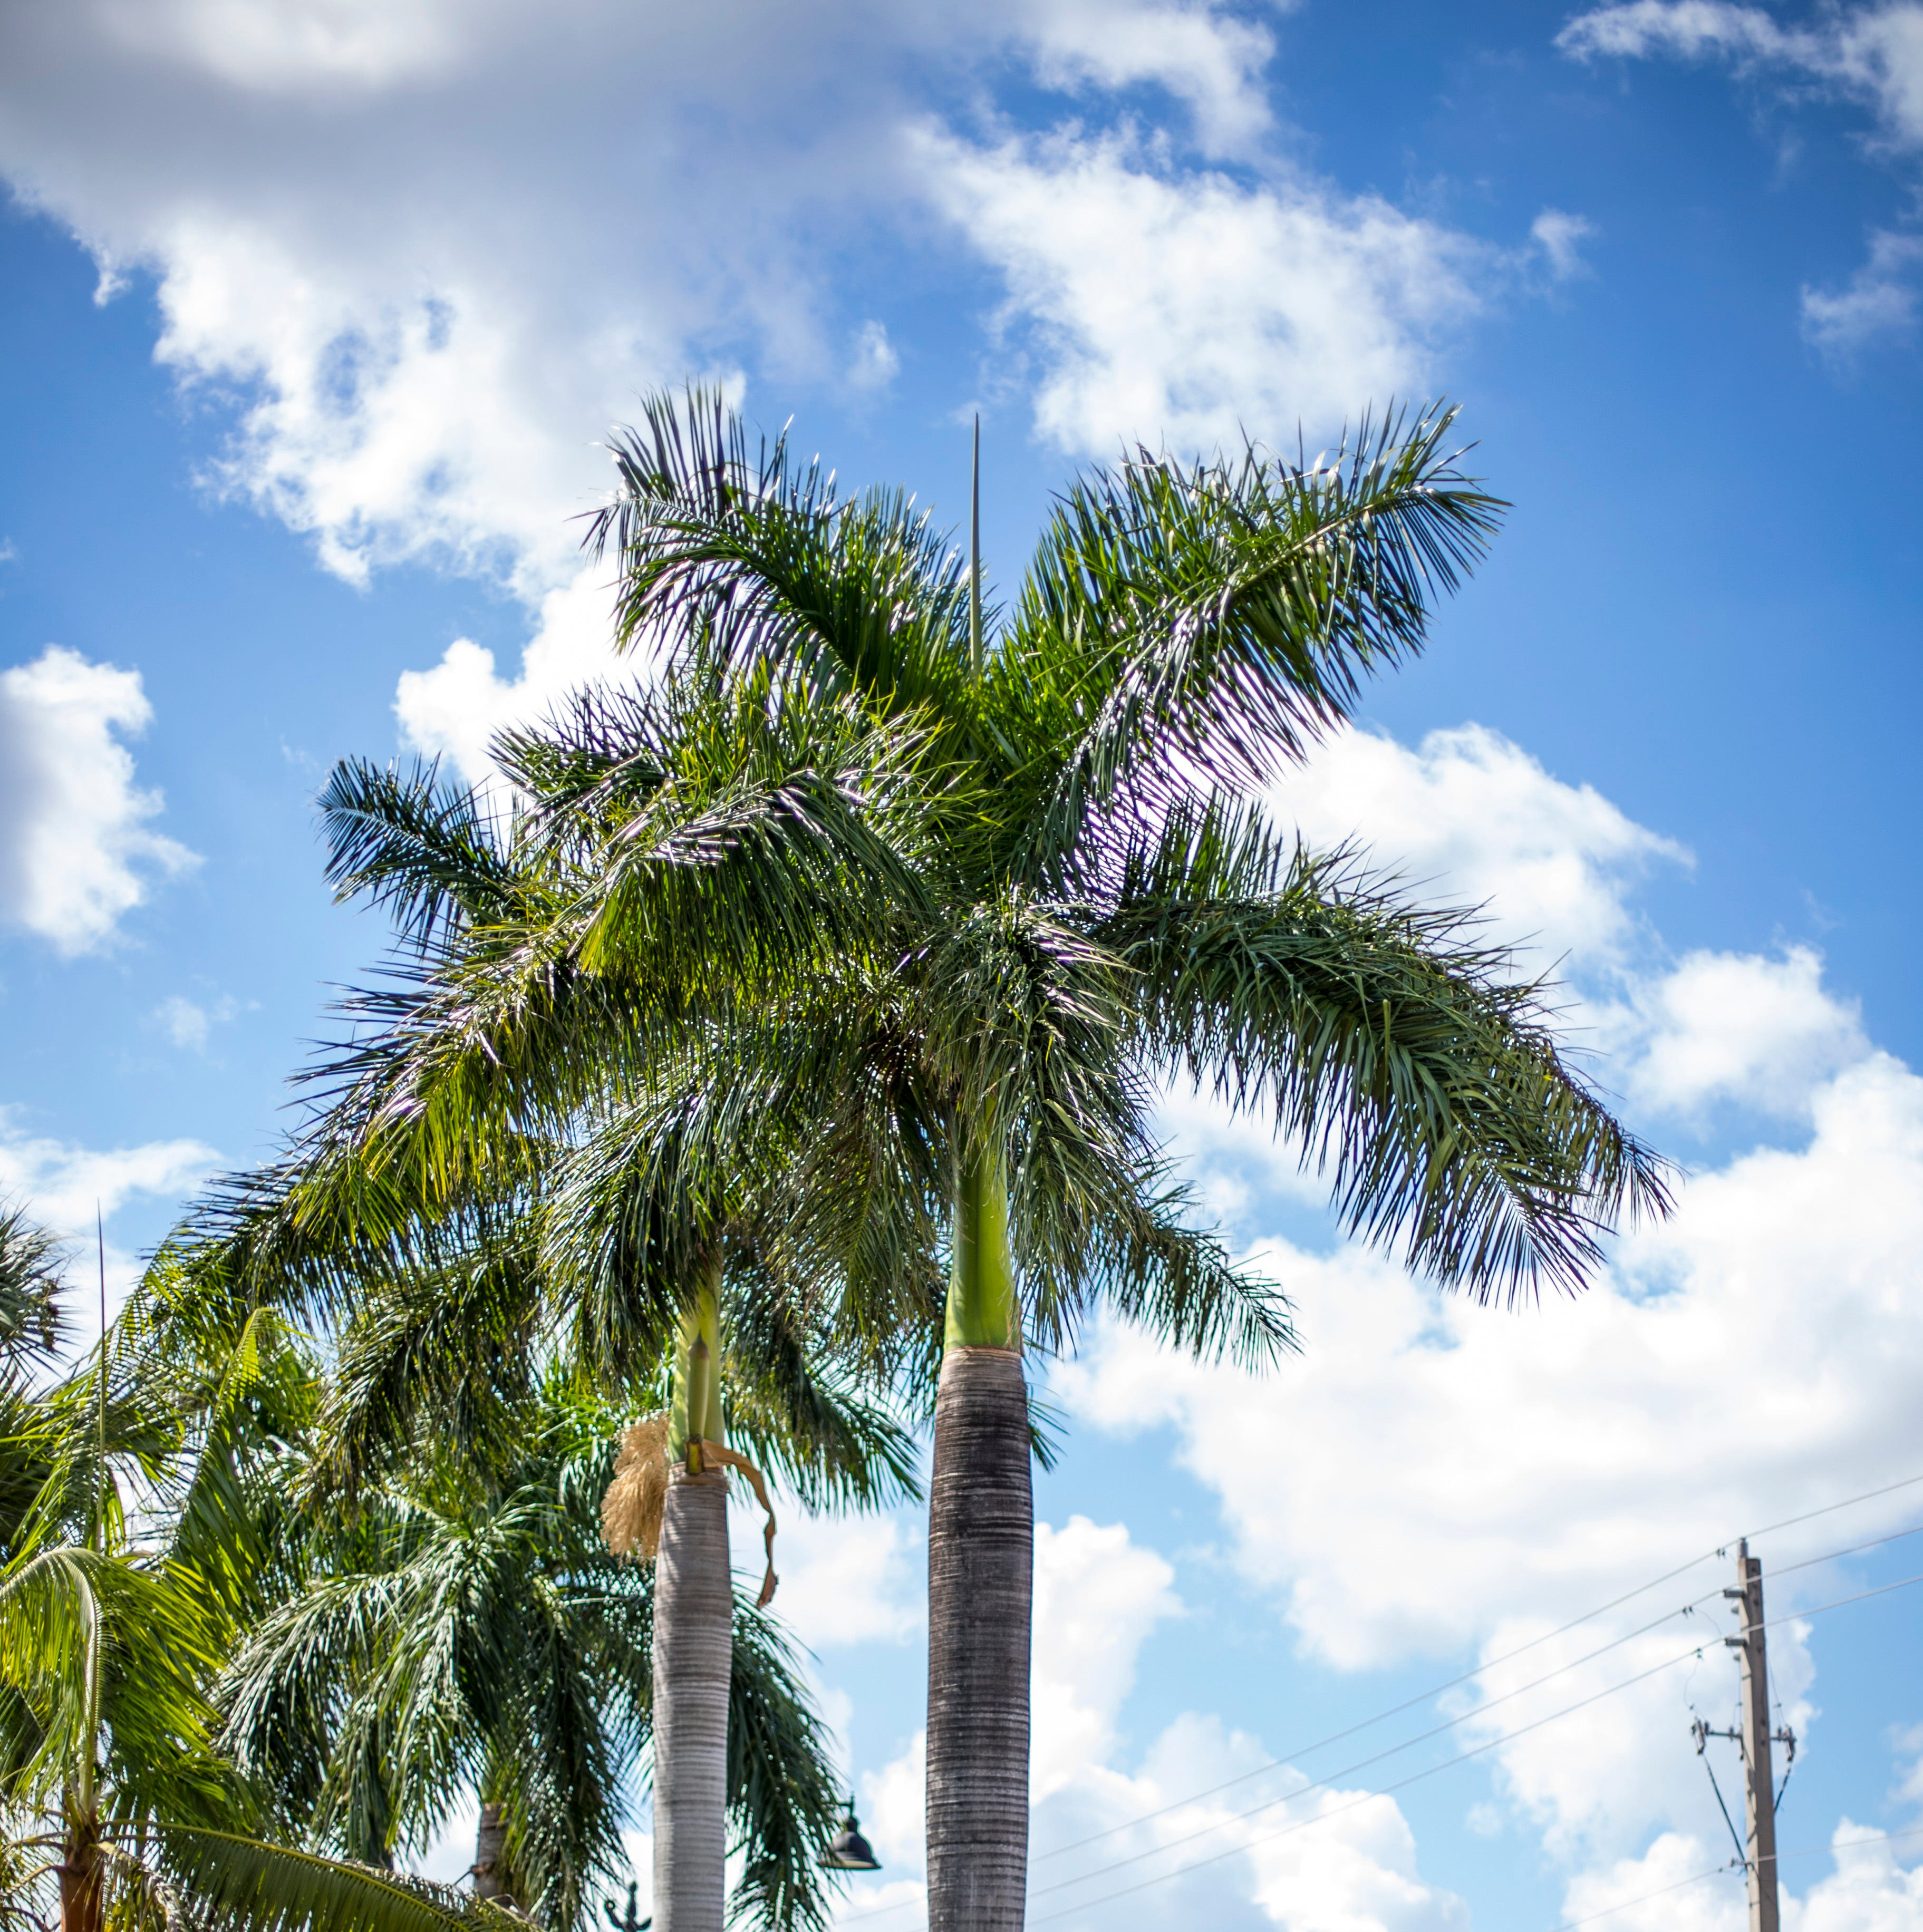 Naples has almost 15,000 city palm trees — here's what that looks like.